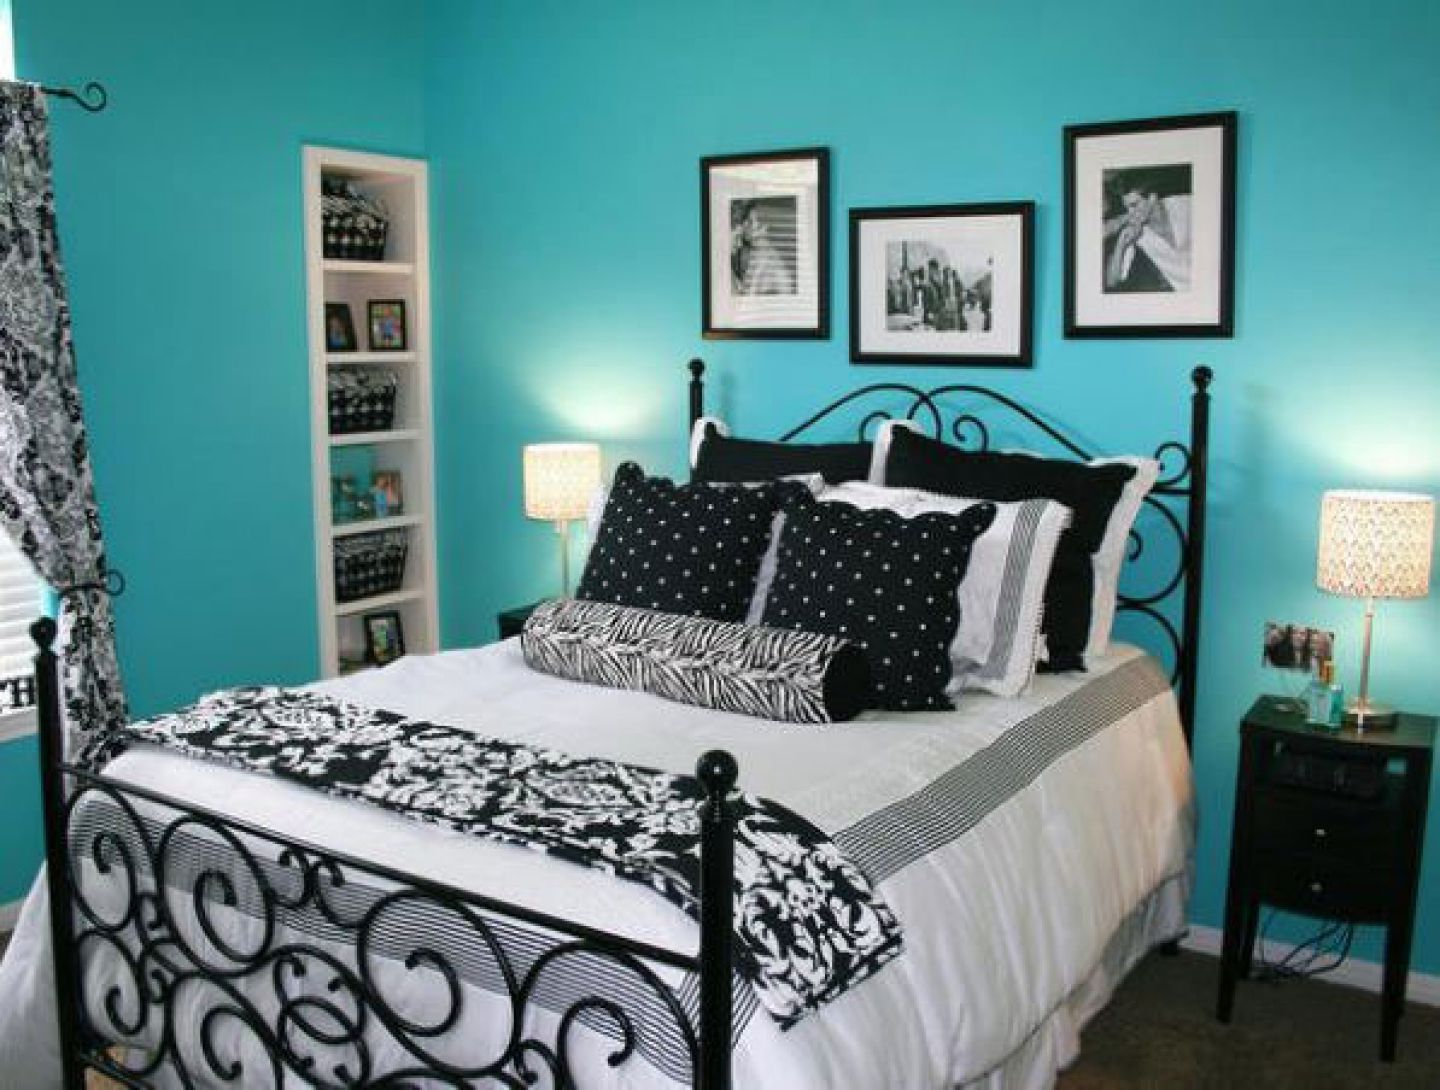 Blue bedroom design for teenage girls - Wonderful Blue Themes Teenage Girl Room Ideas With Elegant Black Metal Bed Frame That Have White Bedding Complete With The Pillows And Beautiful Three